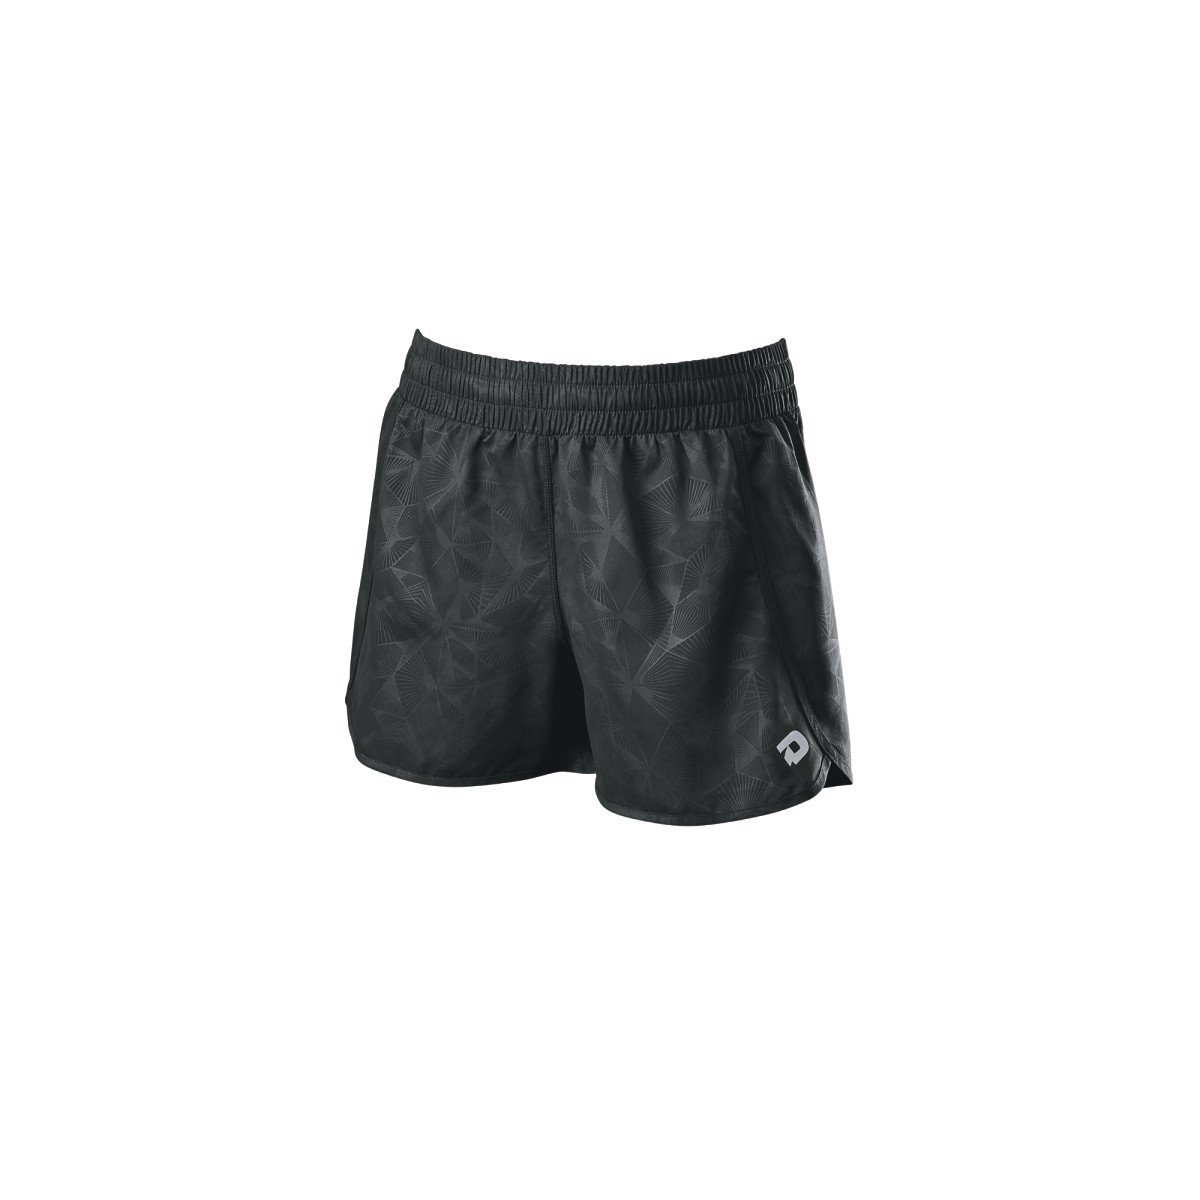 DeMarini Womens Training Shorts - Womens, Black, Medium